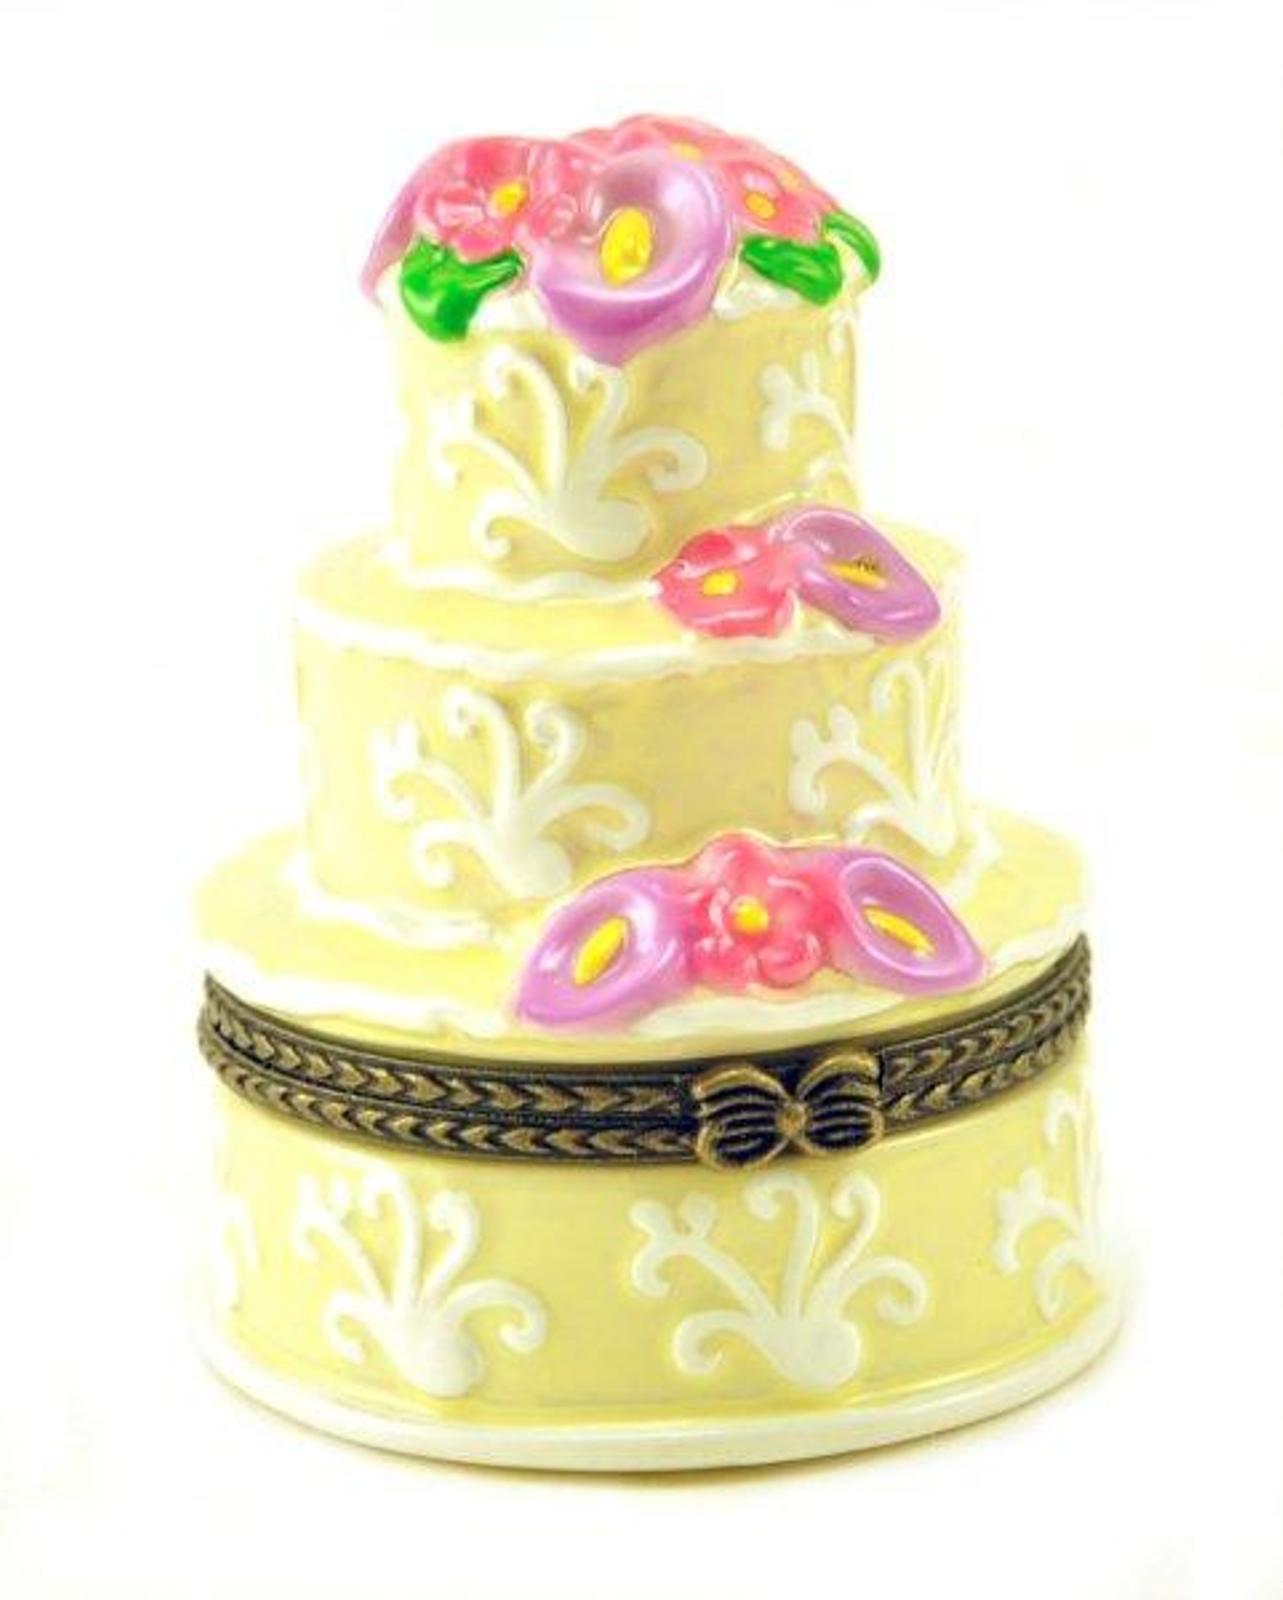 Bakers Dream Elegant Three Layer Wedding Cake Hinged Porcelain ...